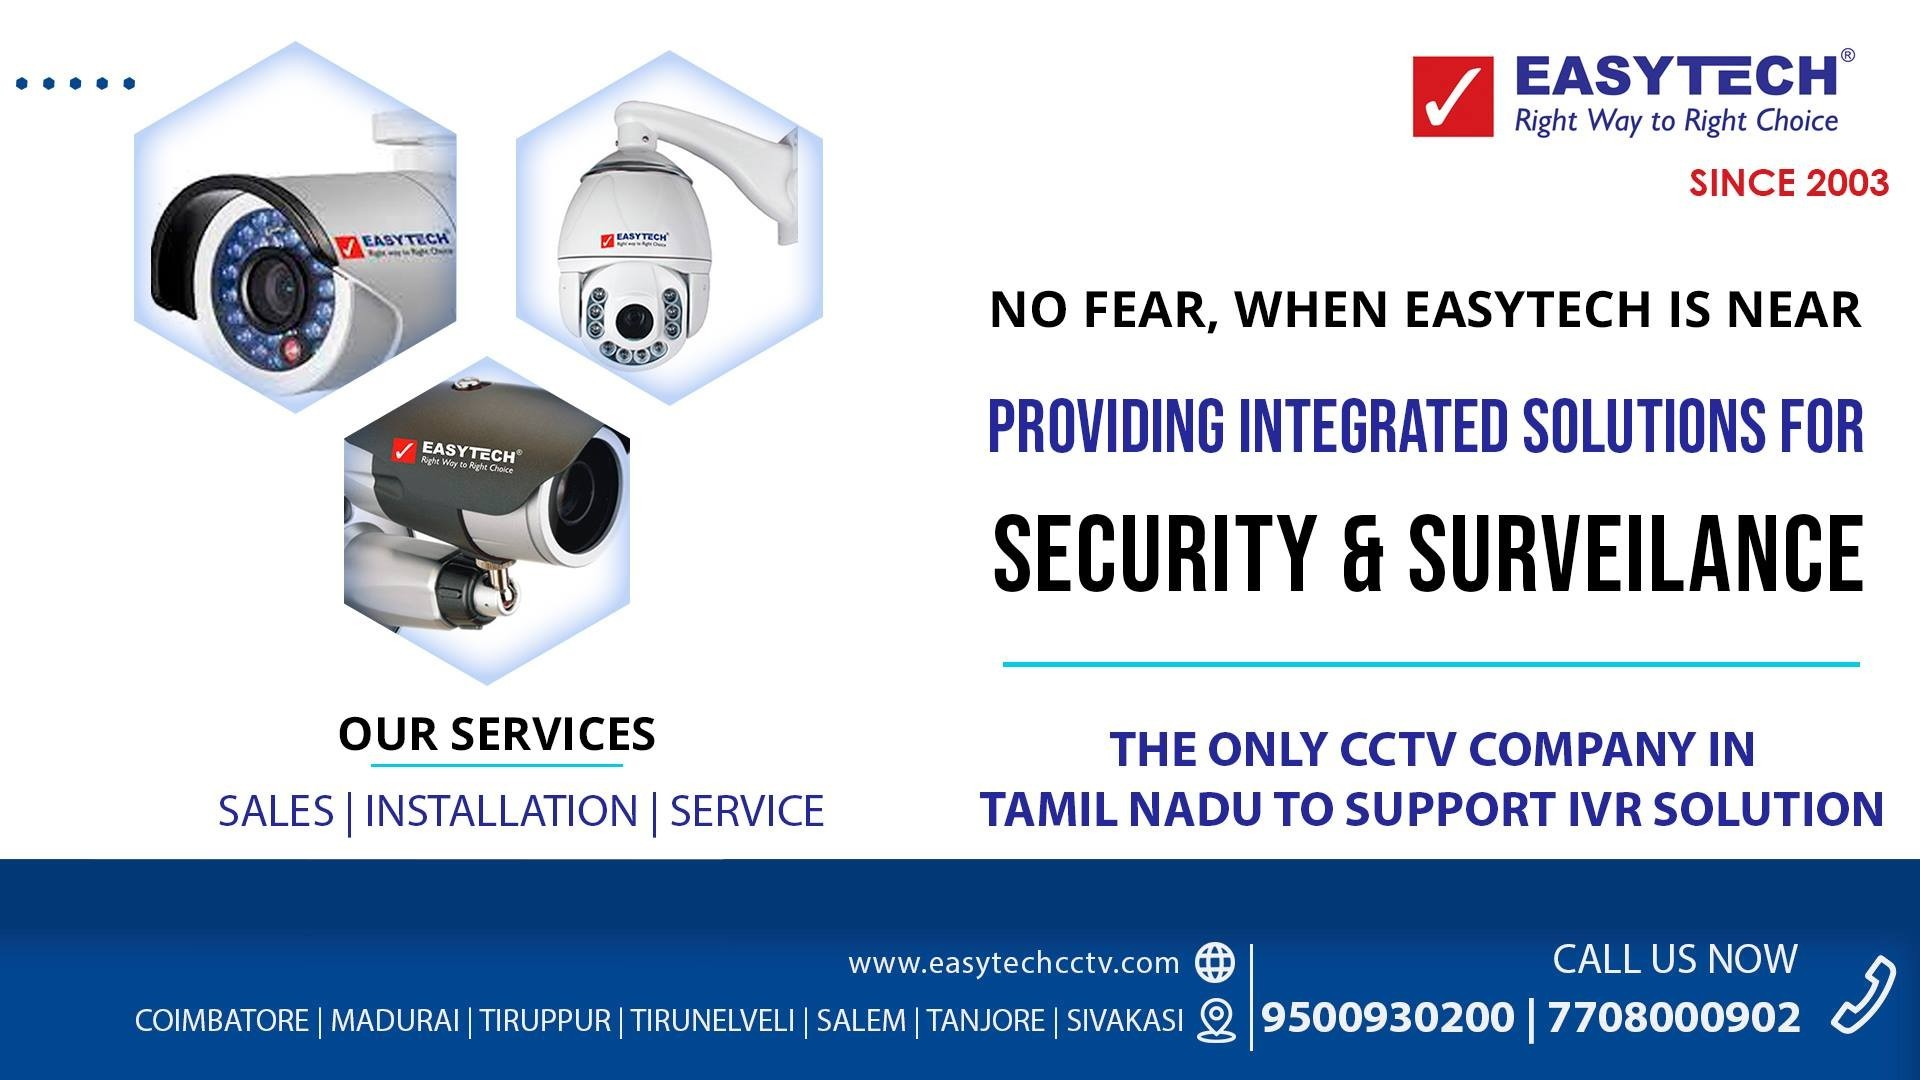 CCTV Dealers in Coimbatore | CCTV Camera Installation in Coimbatore